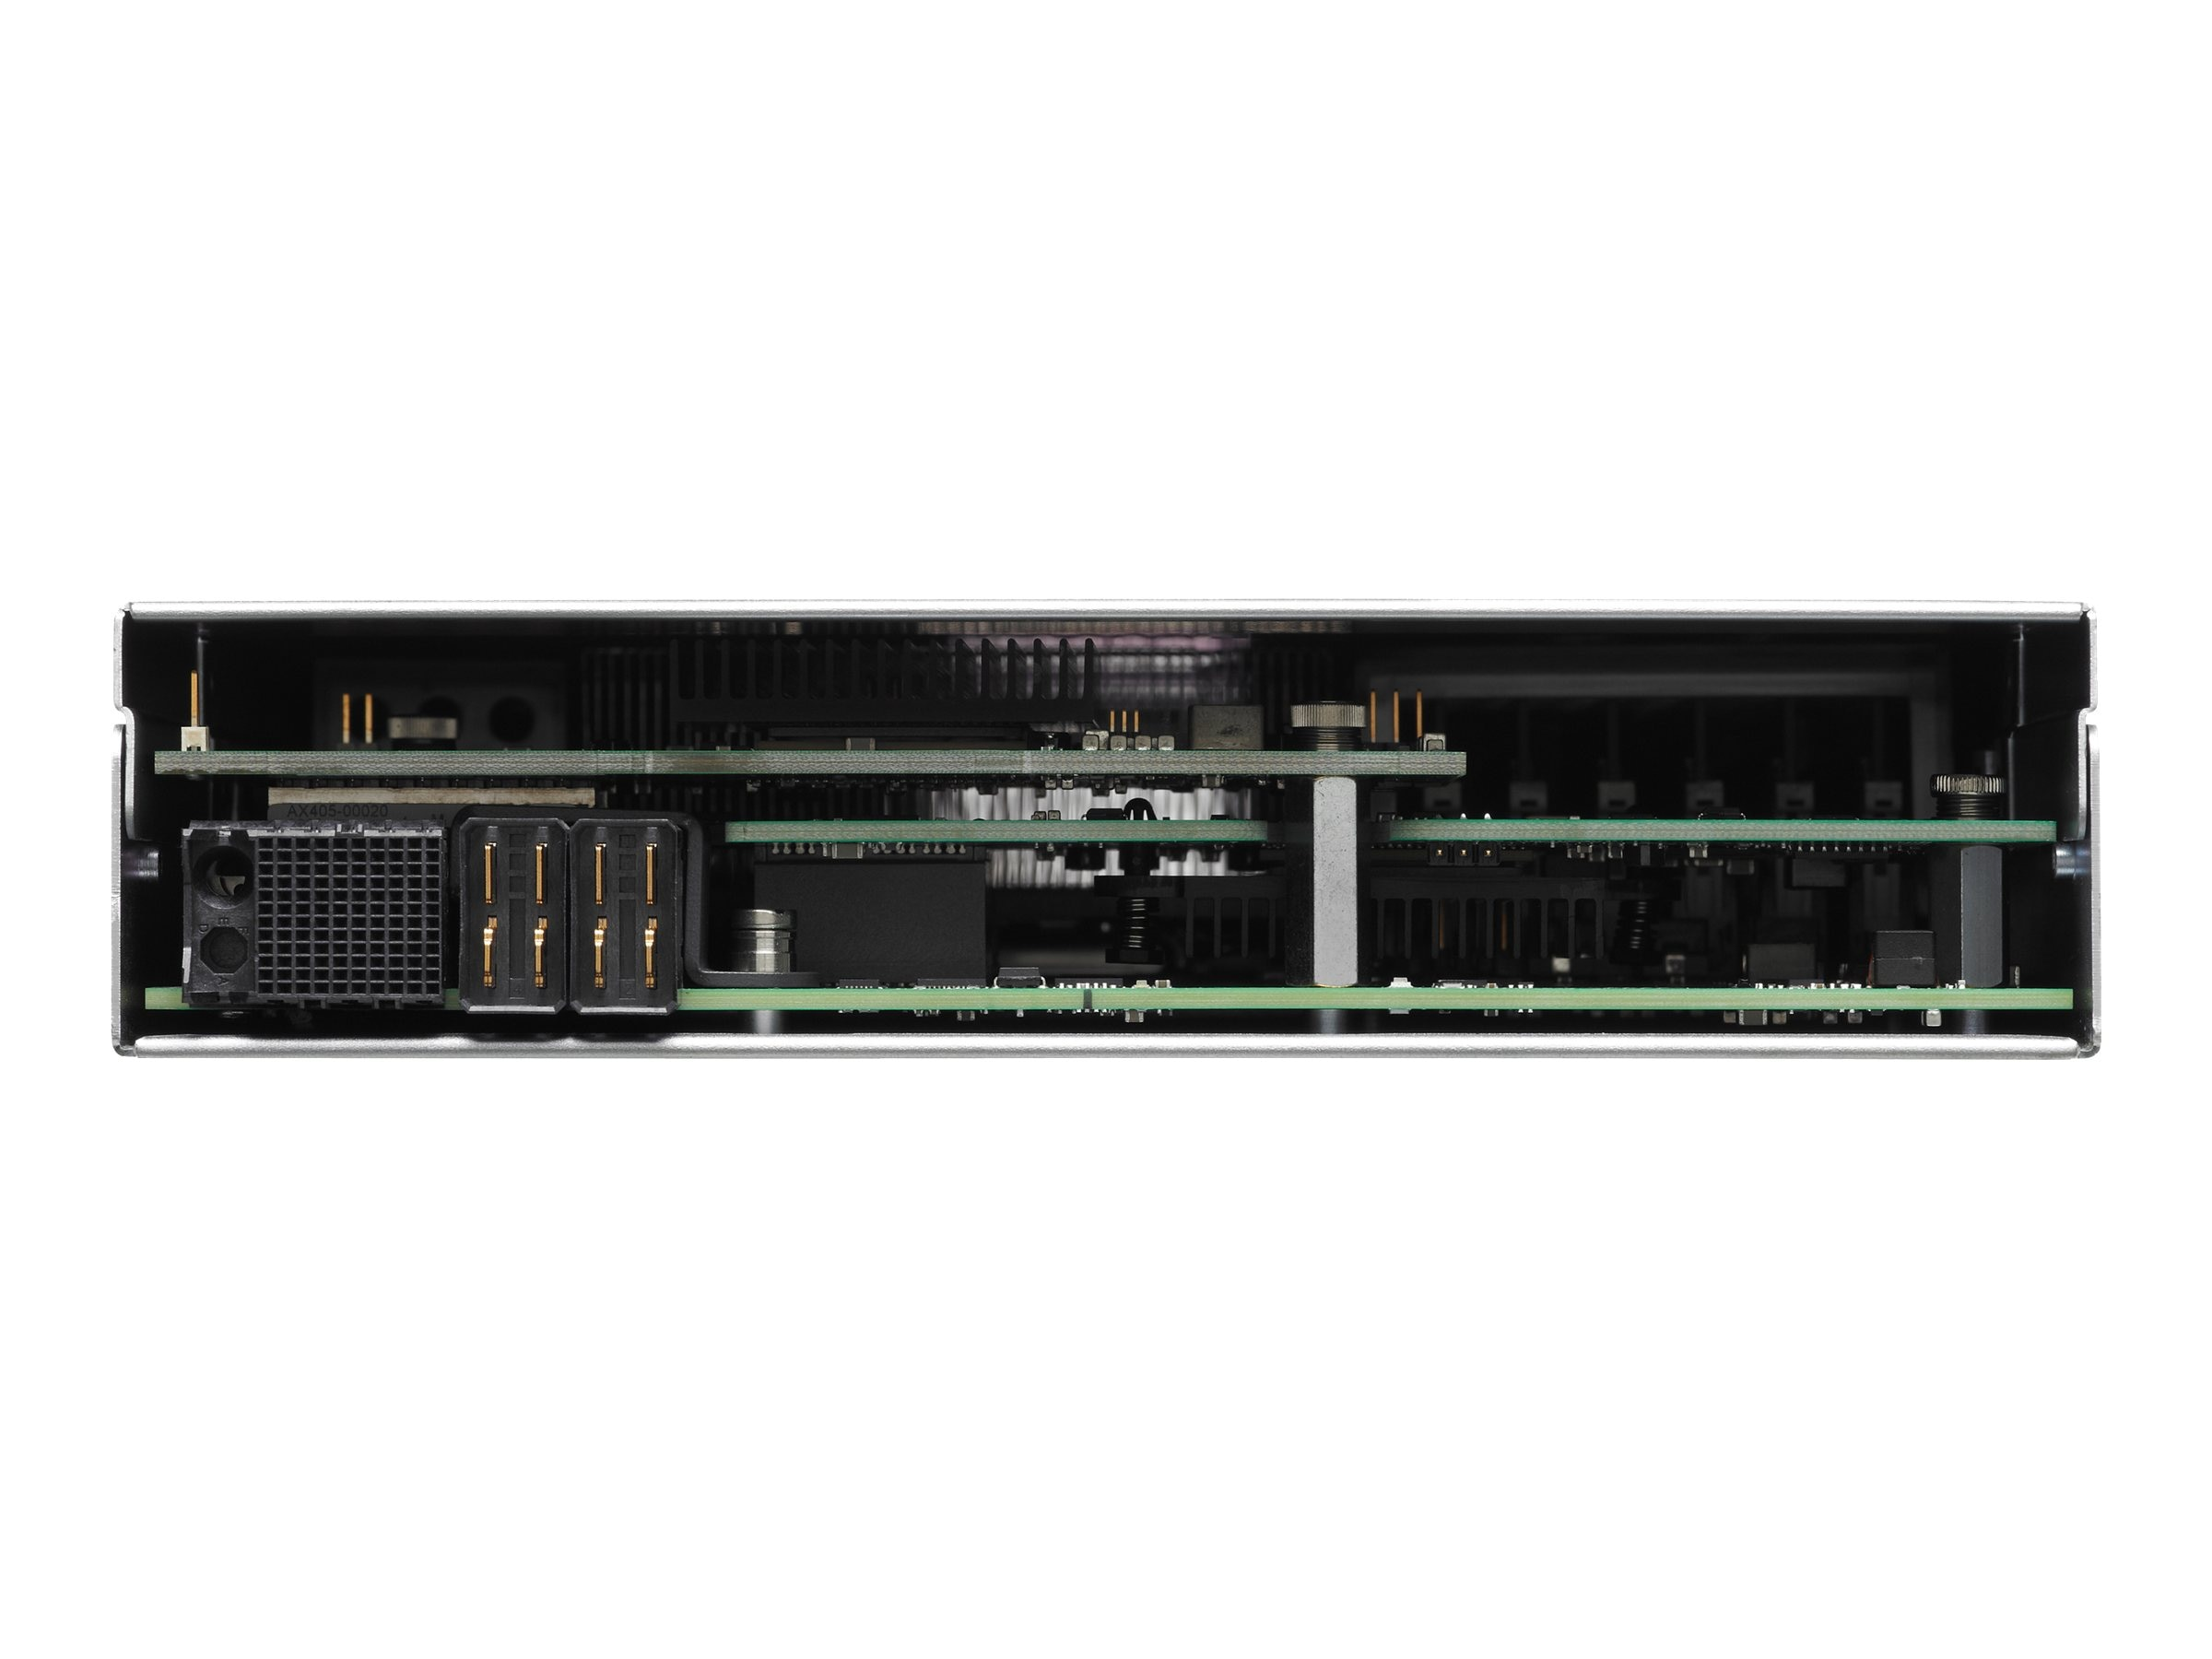 Cisco UCS B22 SmartPlay Entry Expansion Pack (2x) Xeon 6C E5-2420 1.9GHz 15MB 48GB 2x2.5 HS Bays 10GbE, UCS-EZ-ENTS-B22M3